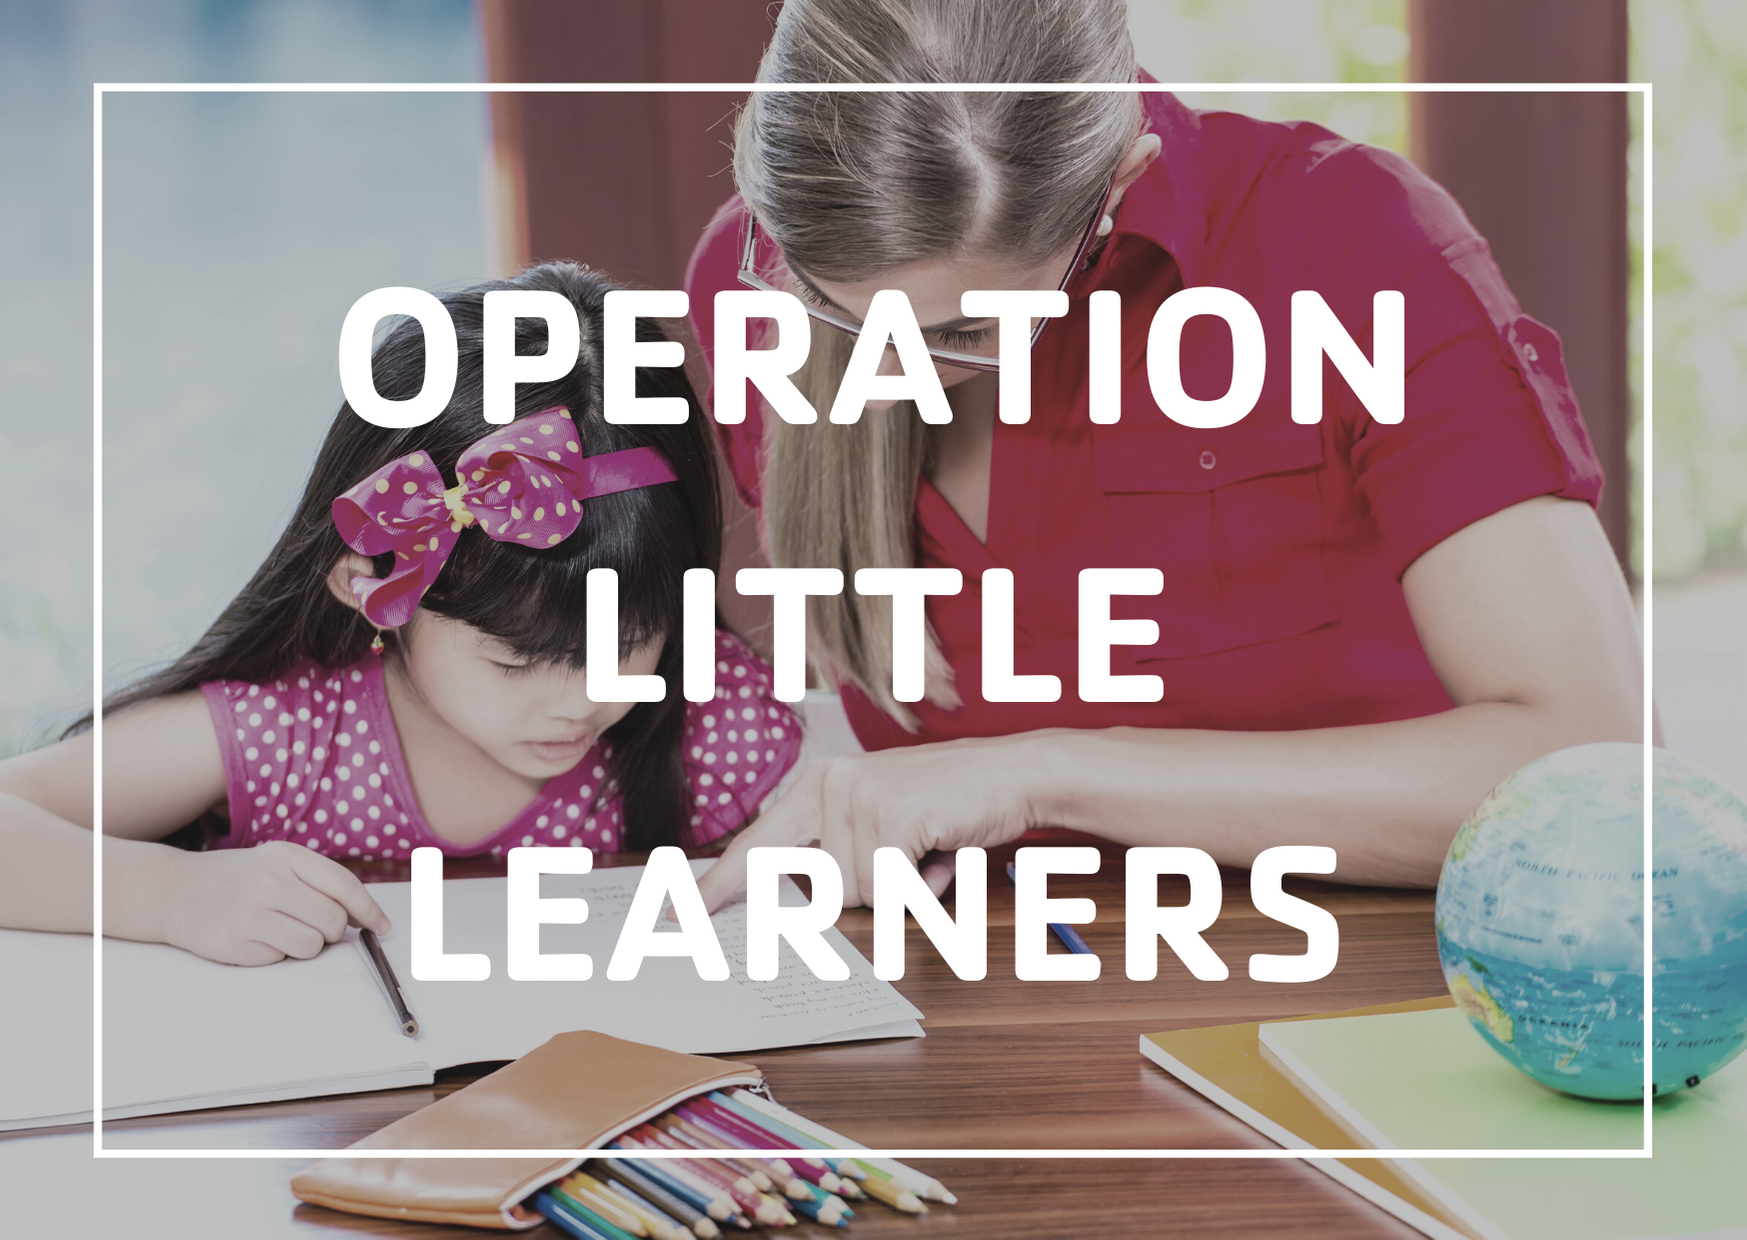 operation little learners image of mom helping daughter with homework